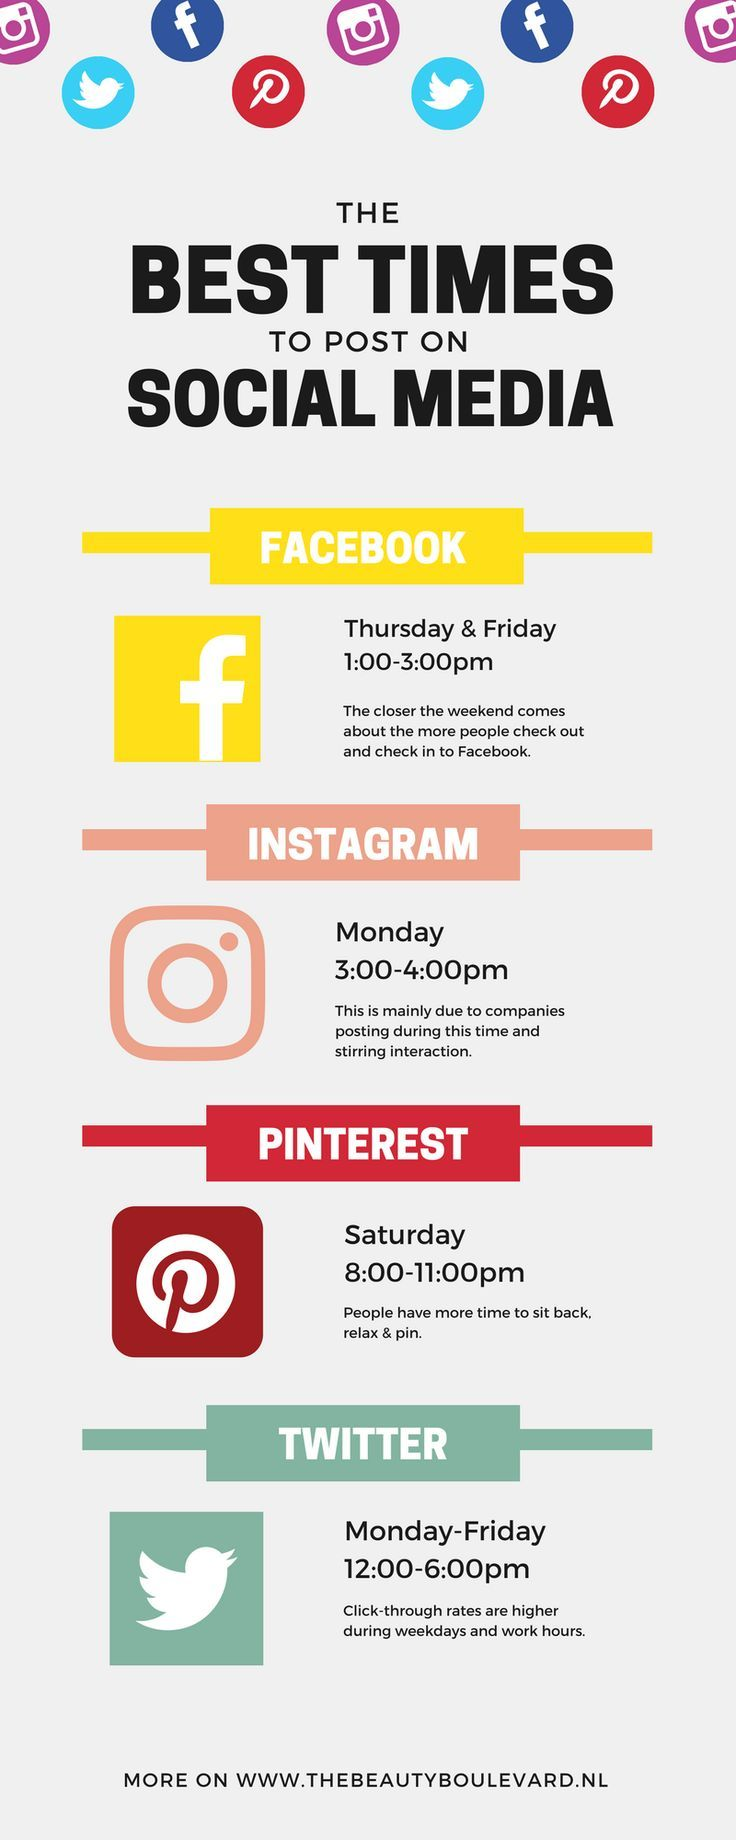 Share on facebook tweet this post pin images to pinterest - Are You Looking For The Best Times To Post On Social Media Then You Are